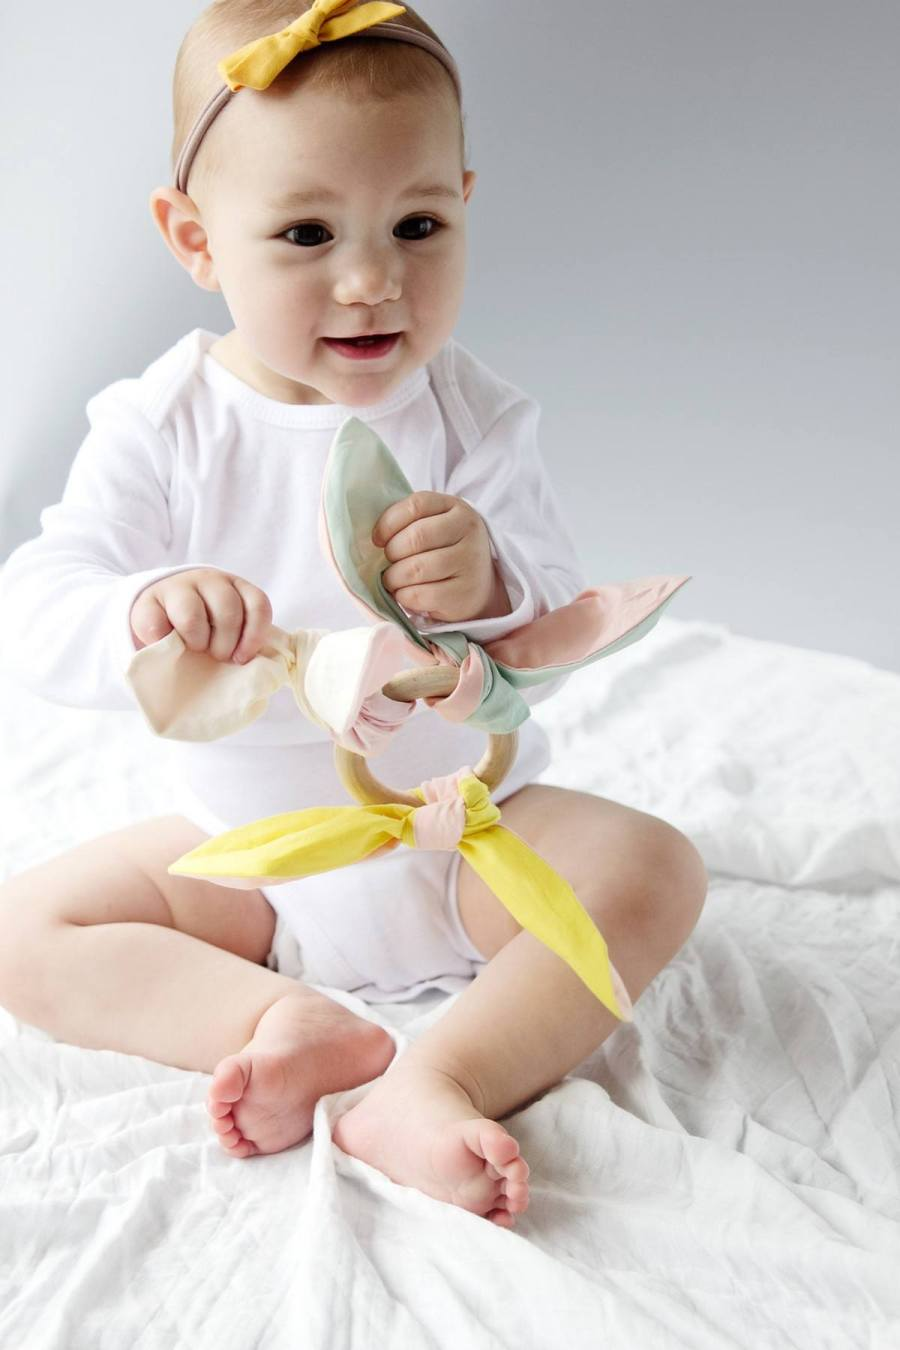 Baby toys, particularly educational baby toys, can cost a lot of money. Unfortunately, babies tend to grow tired of their toys or outgrow them so quickly that you may think you've bought them for nothing.